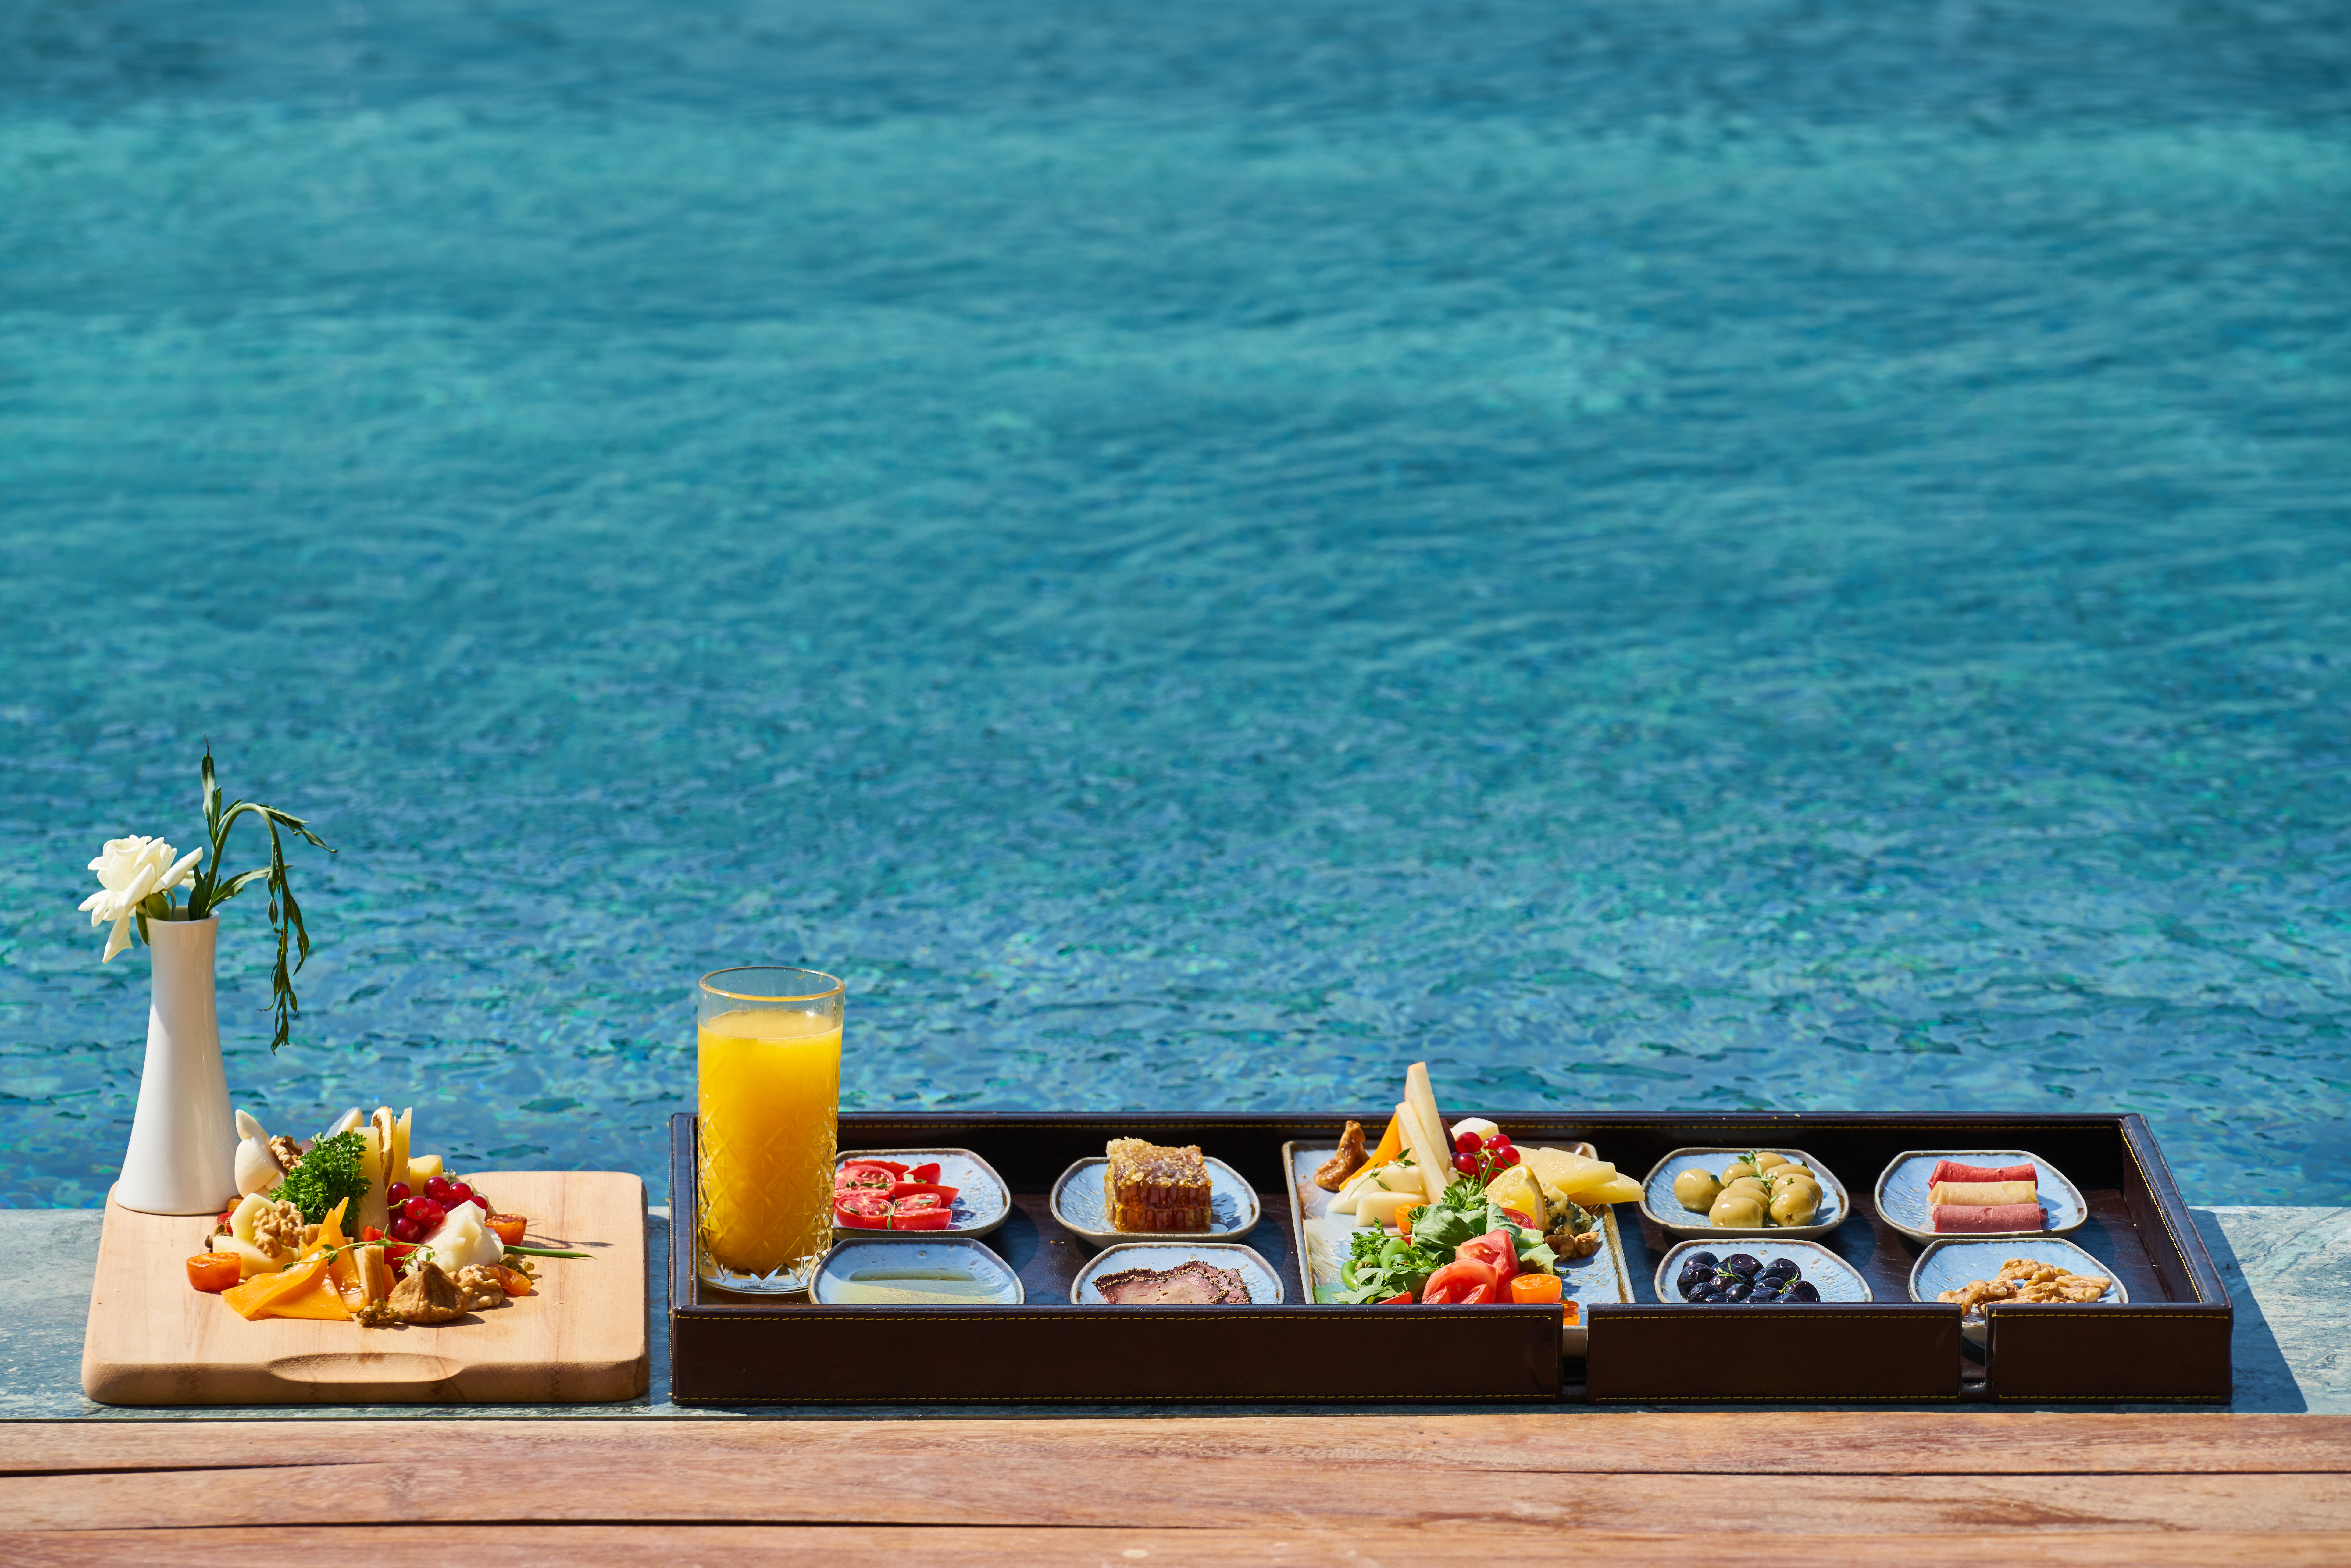 Tray of Food Beside Body of Water